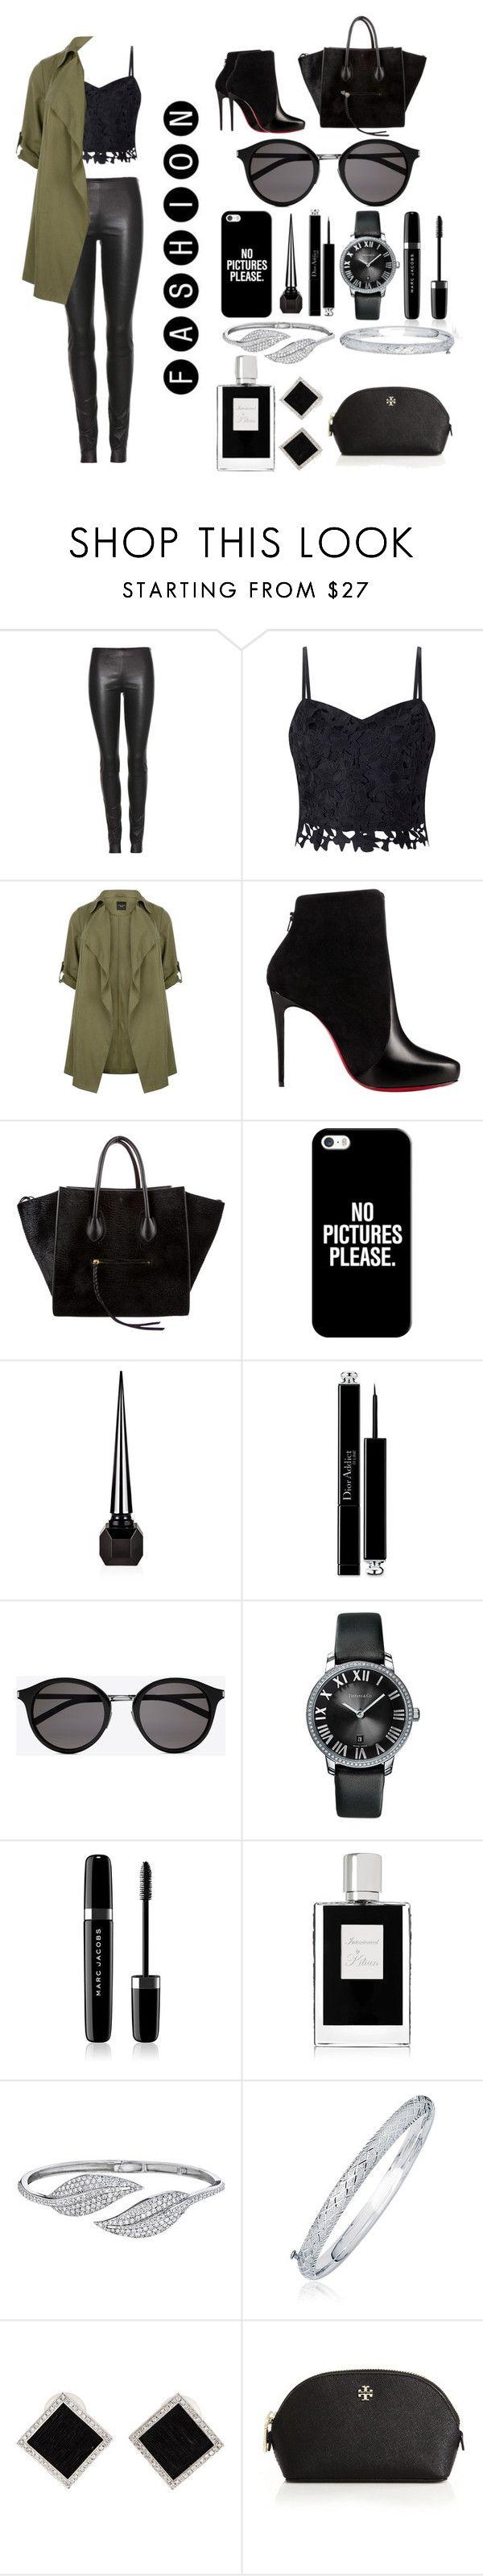 """No pictures please"" by margaery-tyrel ❤ liked on Polyvore featuring The Row, Lipsy, Christian Louboutin, CÉLINE, Casetify, Christian Dior, Yves Saint Laurent, Marc Jacobs, Kilian and Penny Preville"